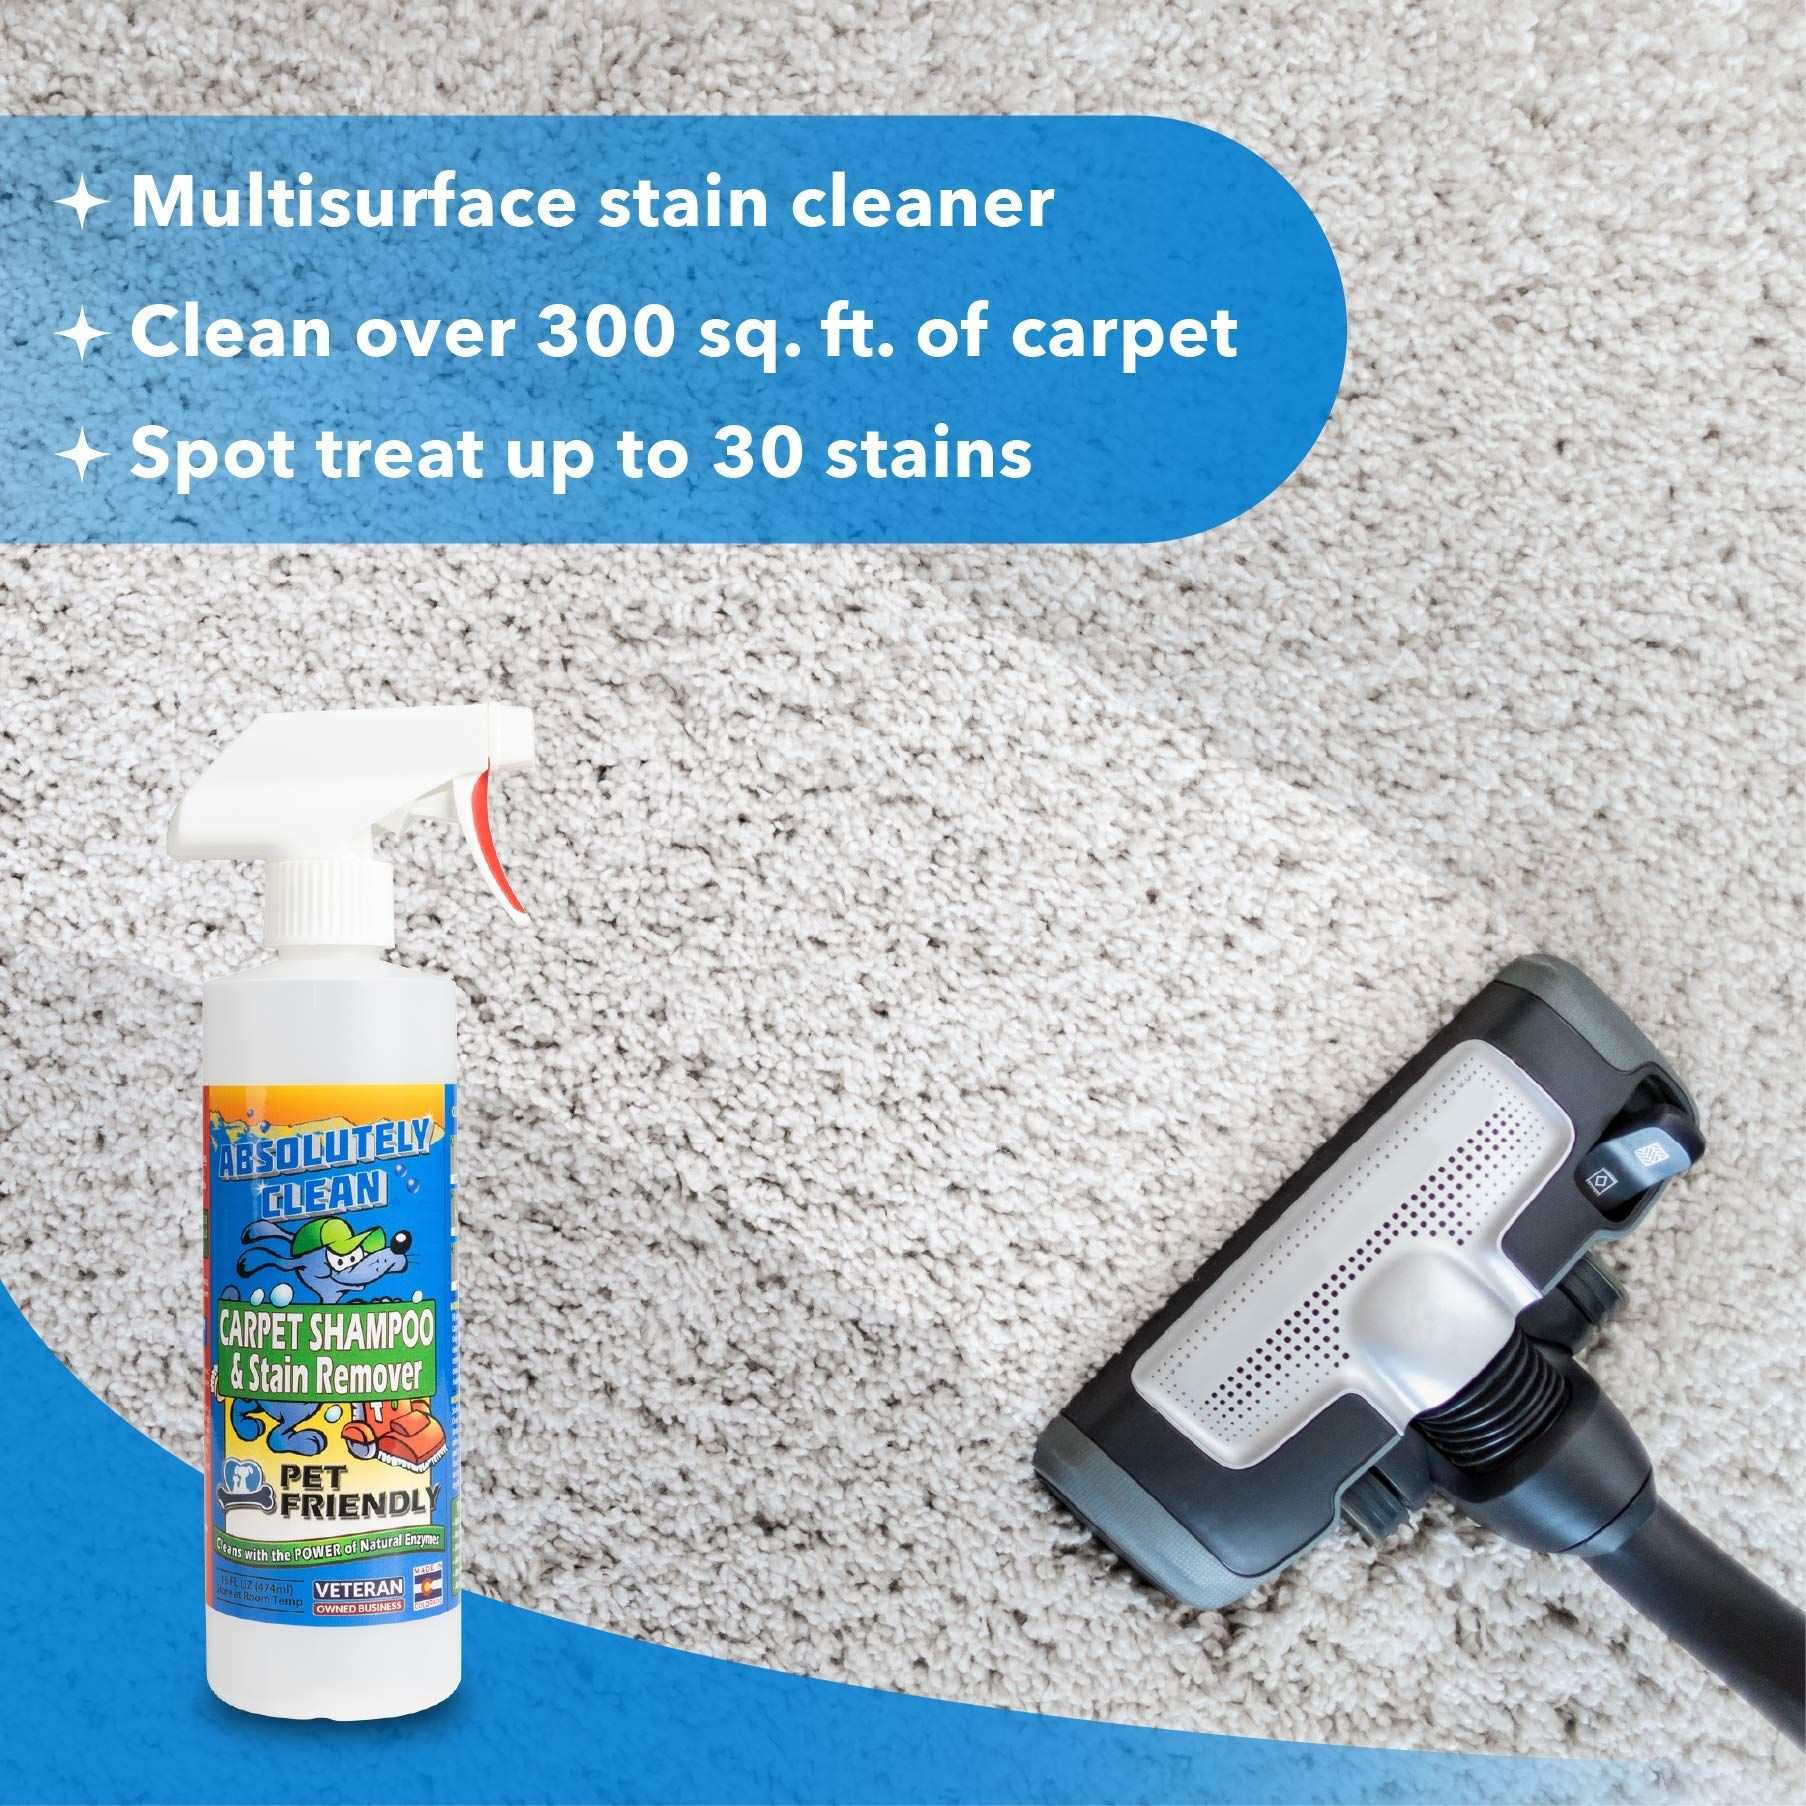 Amazing Carpet Shampoo For Pets Natural Enzymes Remove Most Stains In 60 Seconds Dog And Cat Urine Vomit B In 2020 Pet Odor Stain Removers Cat Urine Carpet Shampoo